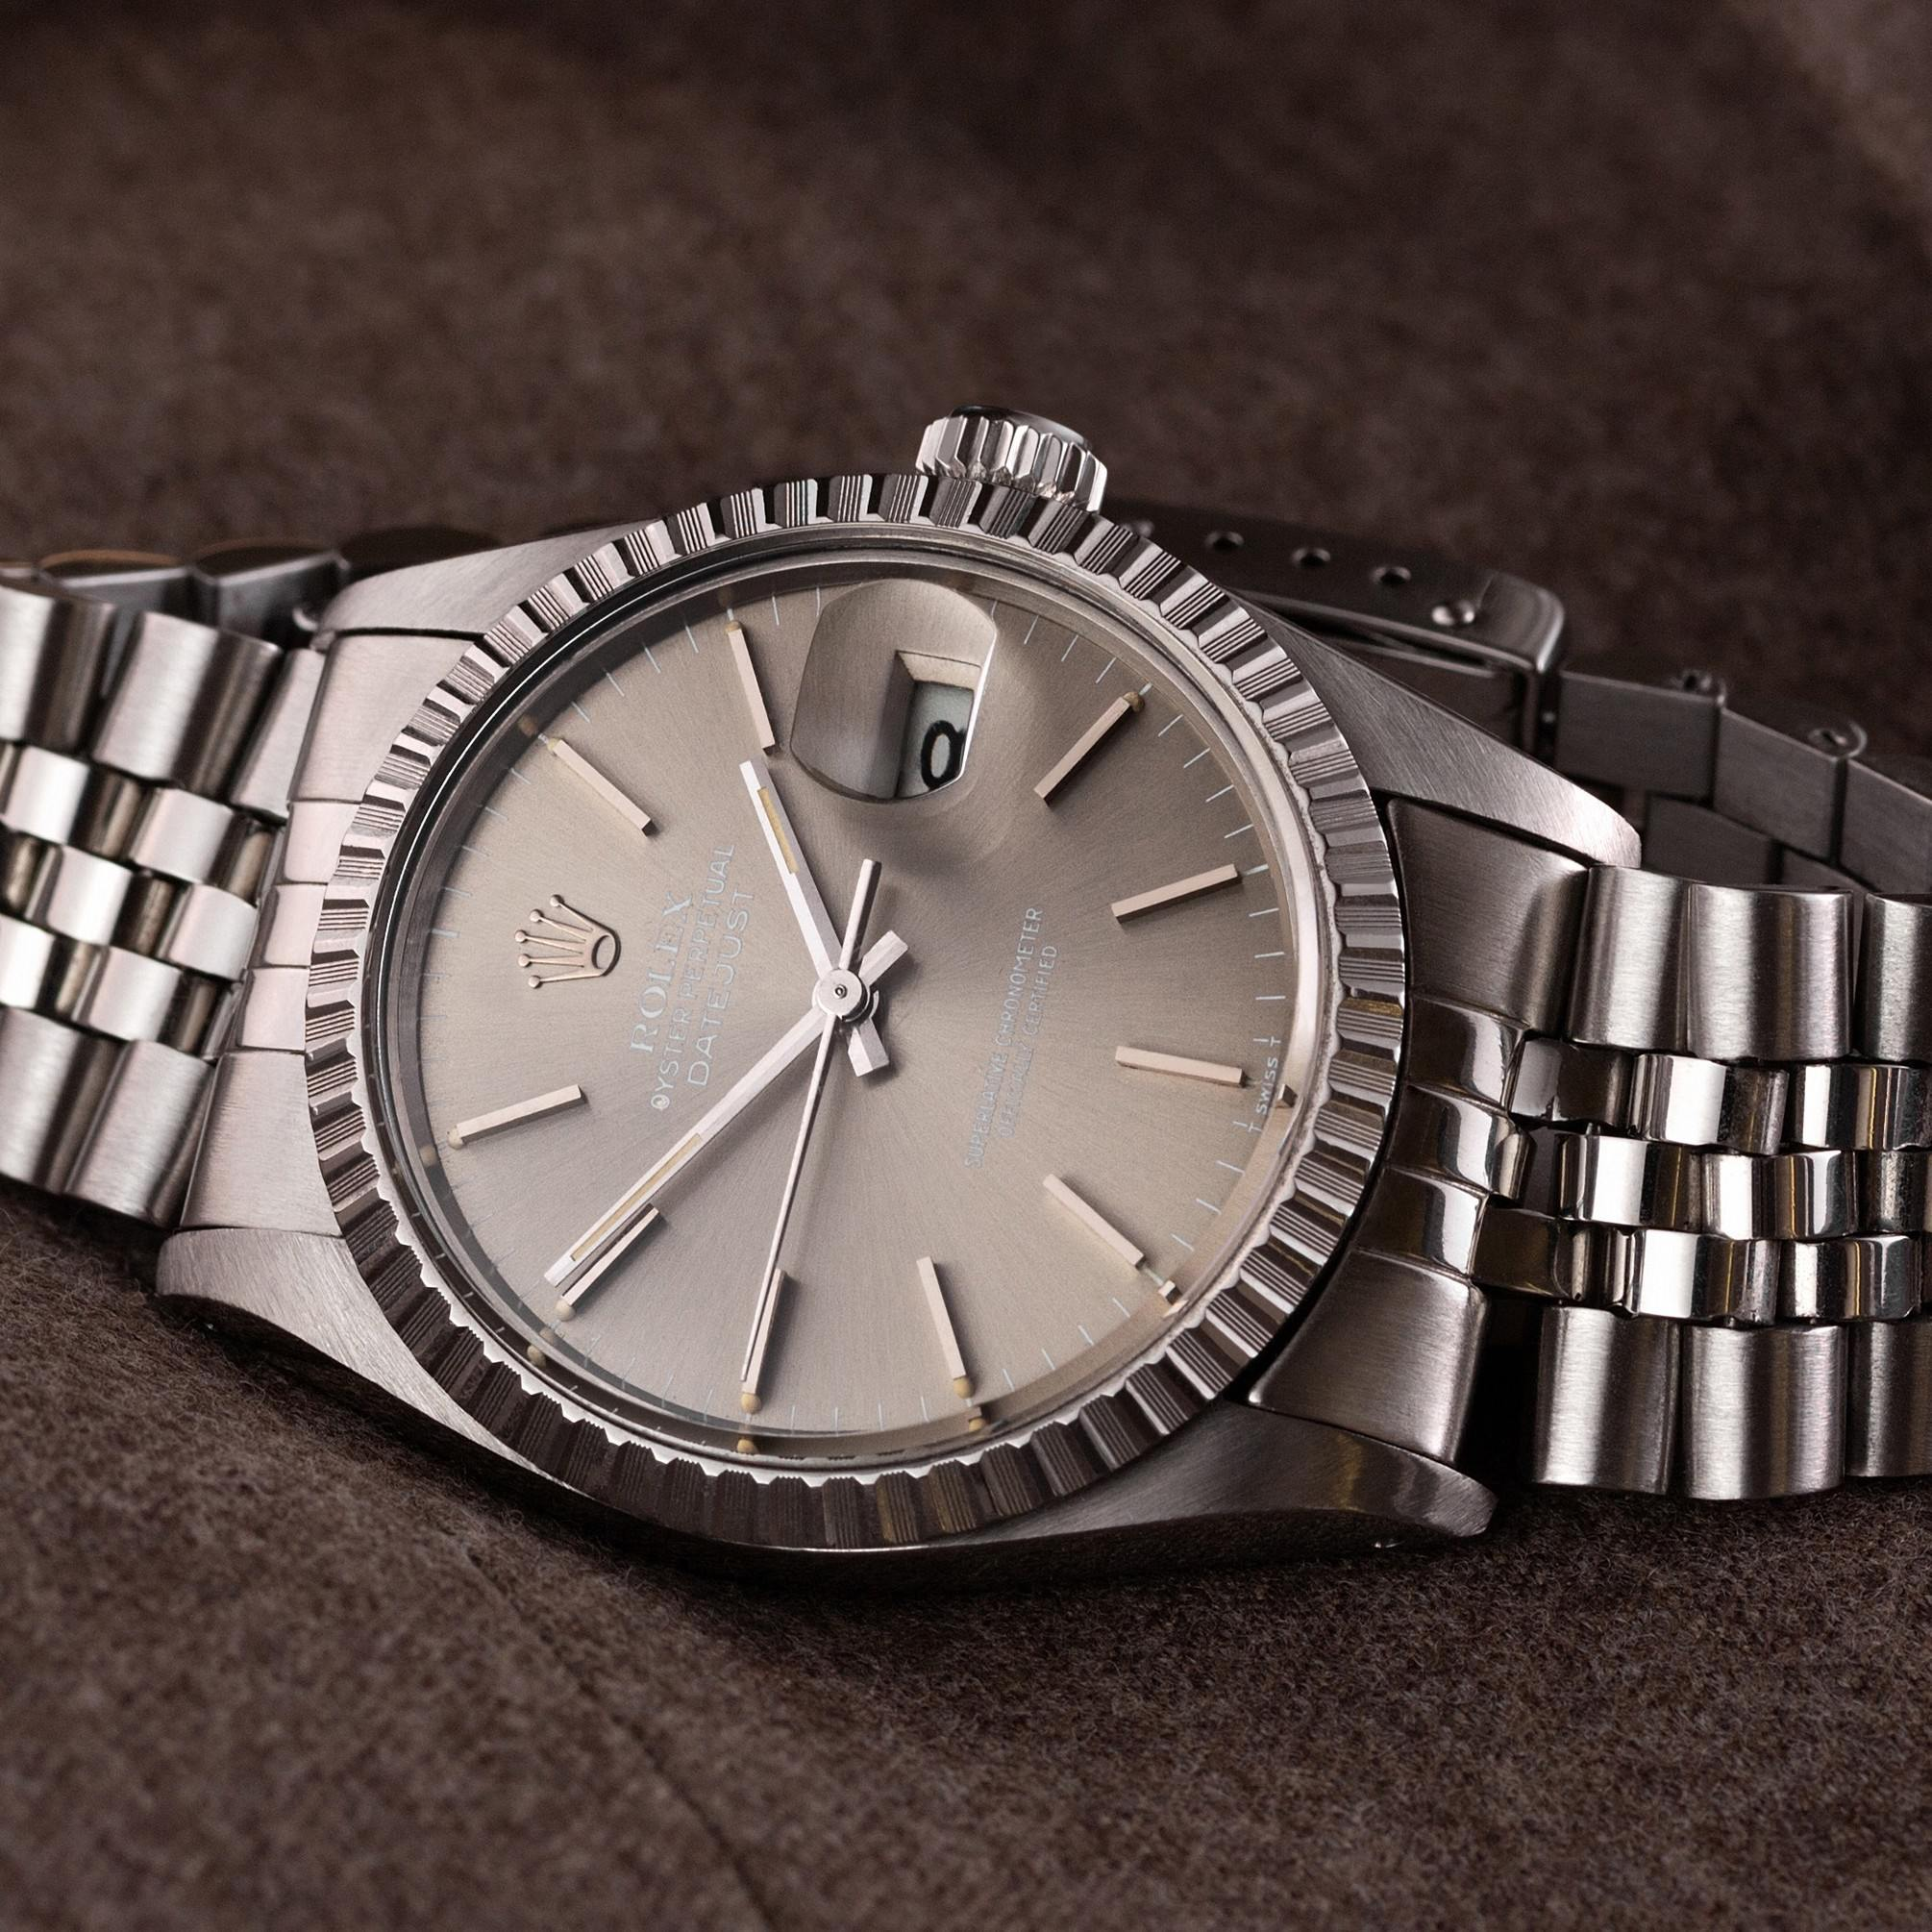 Rolex Datejust 16030 taupe dial - The Modest Man - crop